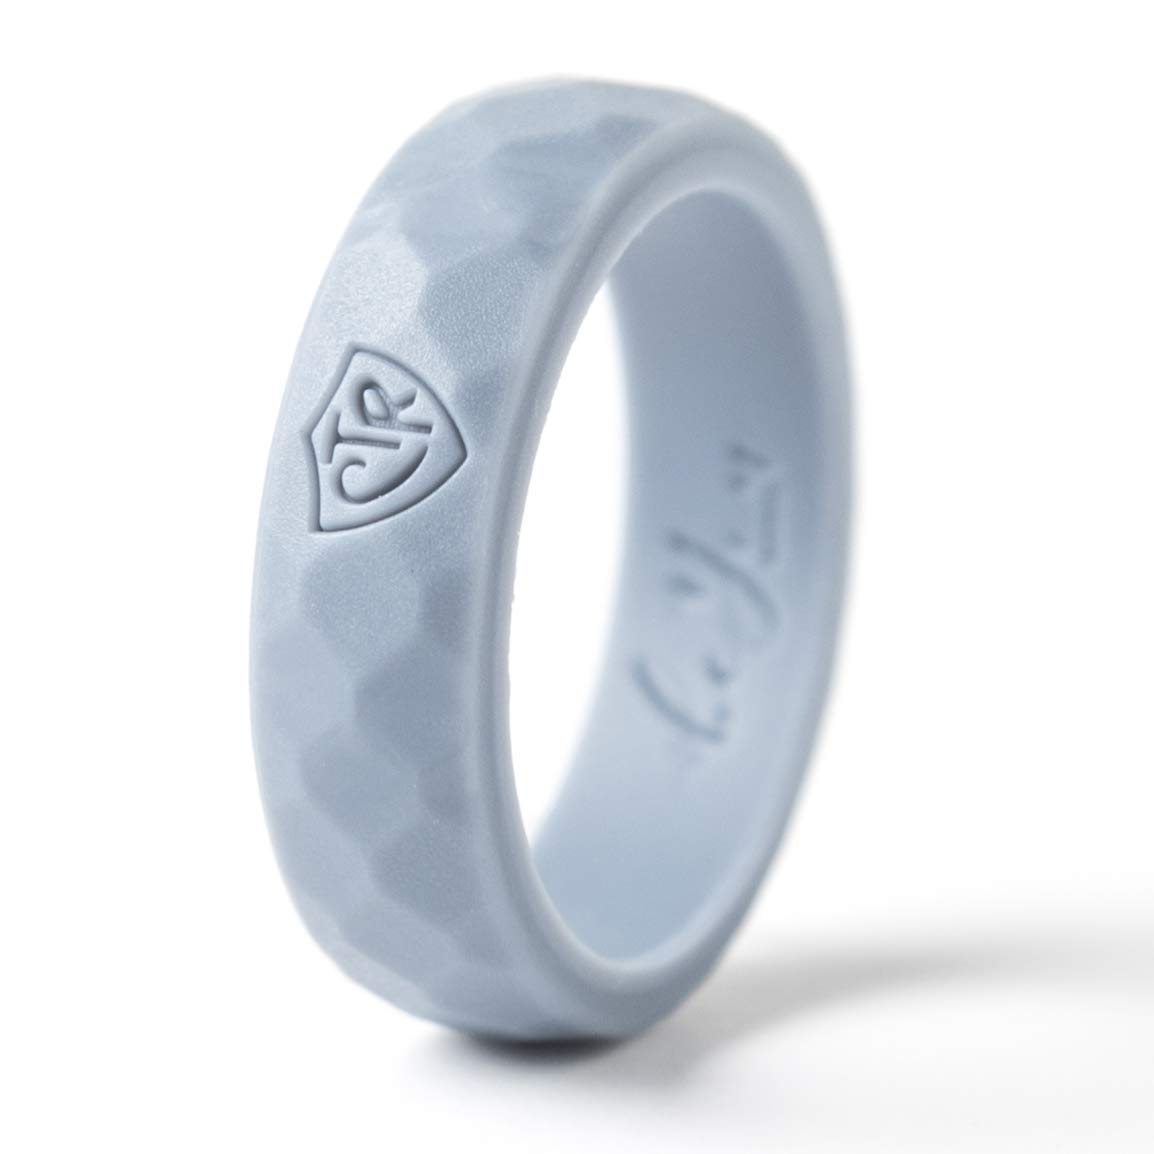 Be You Bands - Women's CTR Silicone Ring (Light Gray, 8)